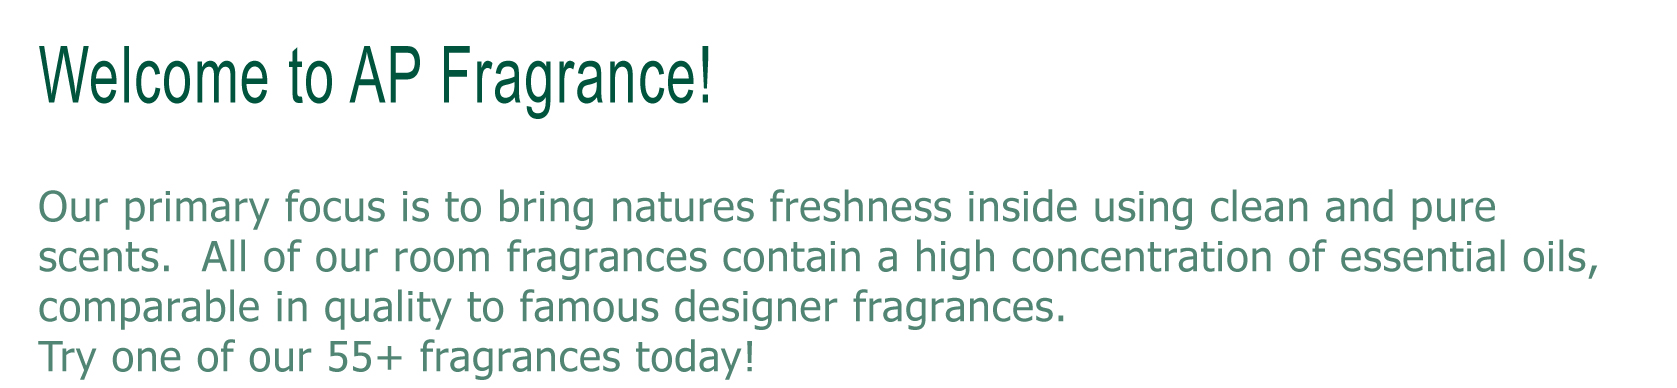 welcome-to-p-fragrance-green-3.jpg